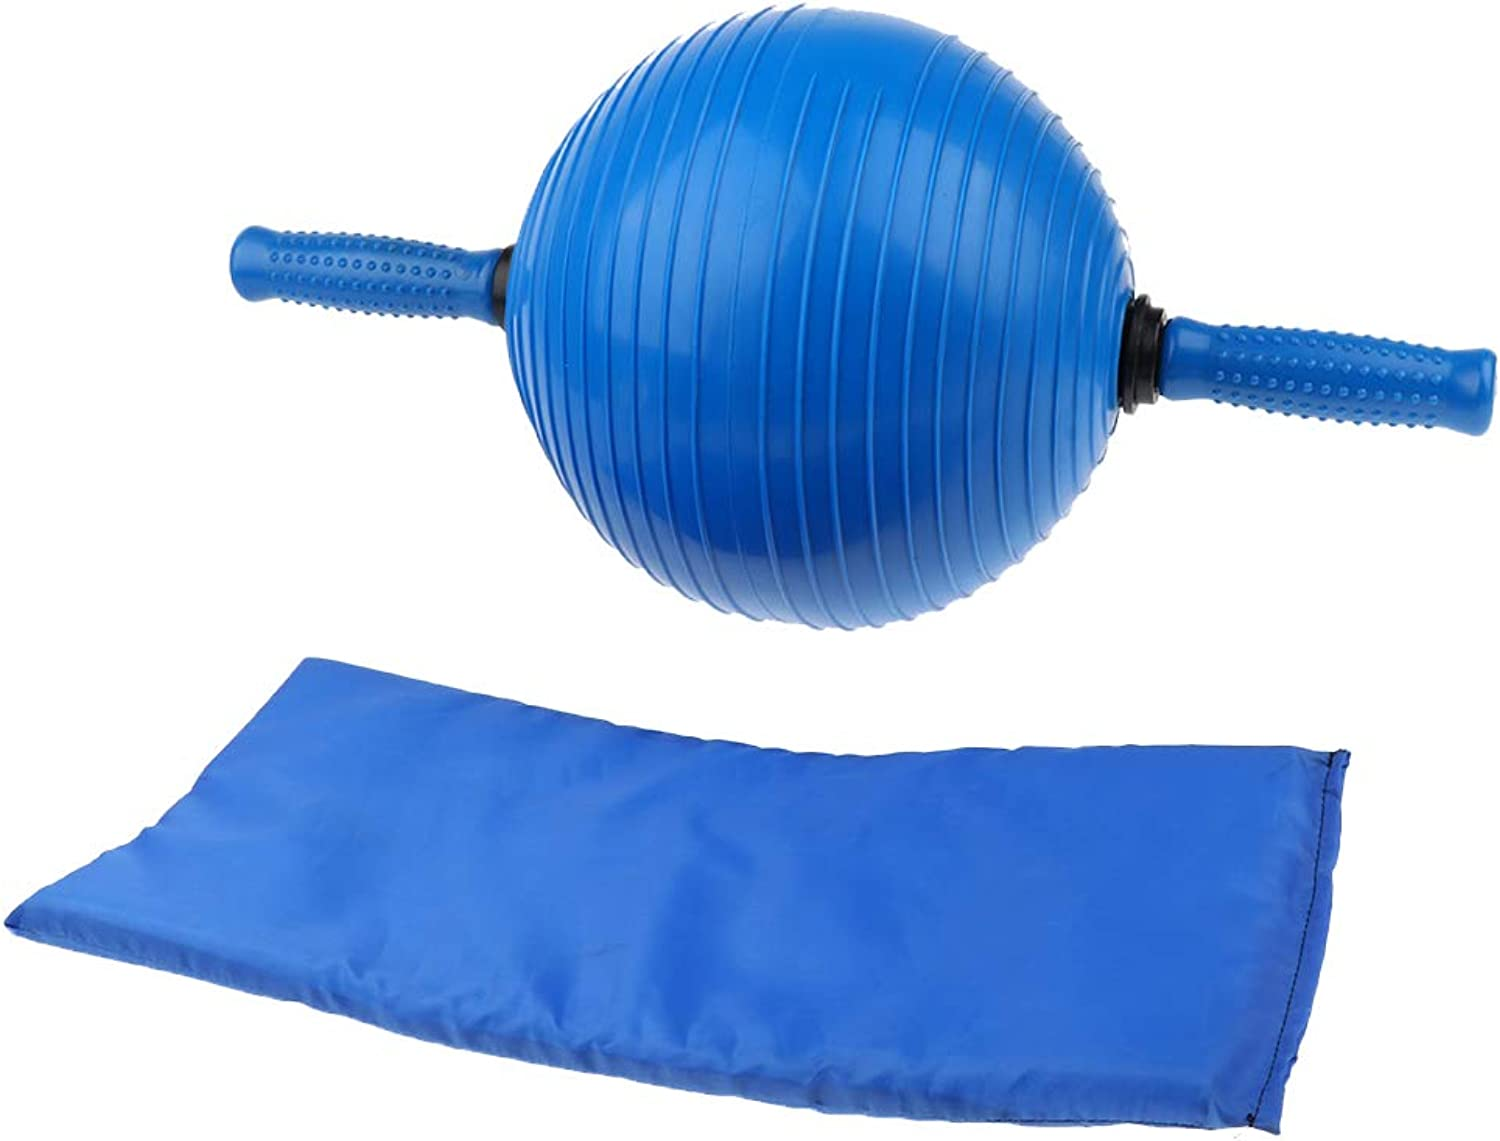 Homyl Fitness Exercise Tool Abdominal Training Ball with AntiSlip Handle+Knee Pad Helps Build and Tone Your Abdominal, Arms & Back